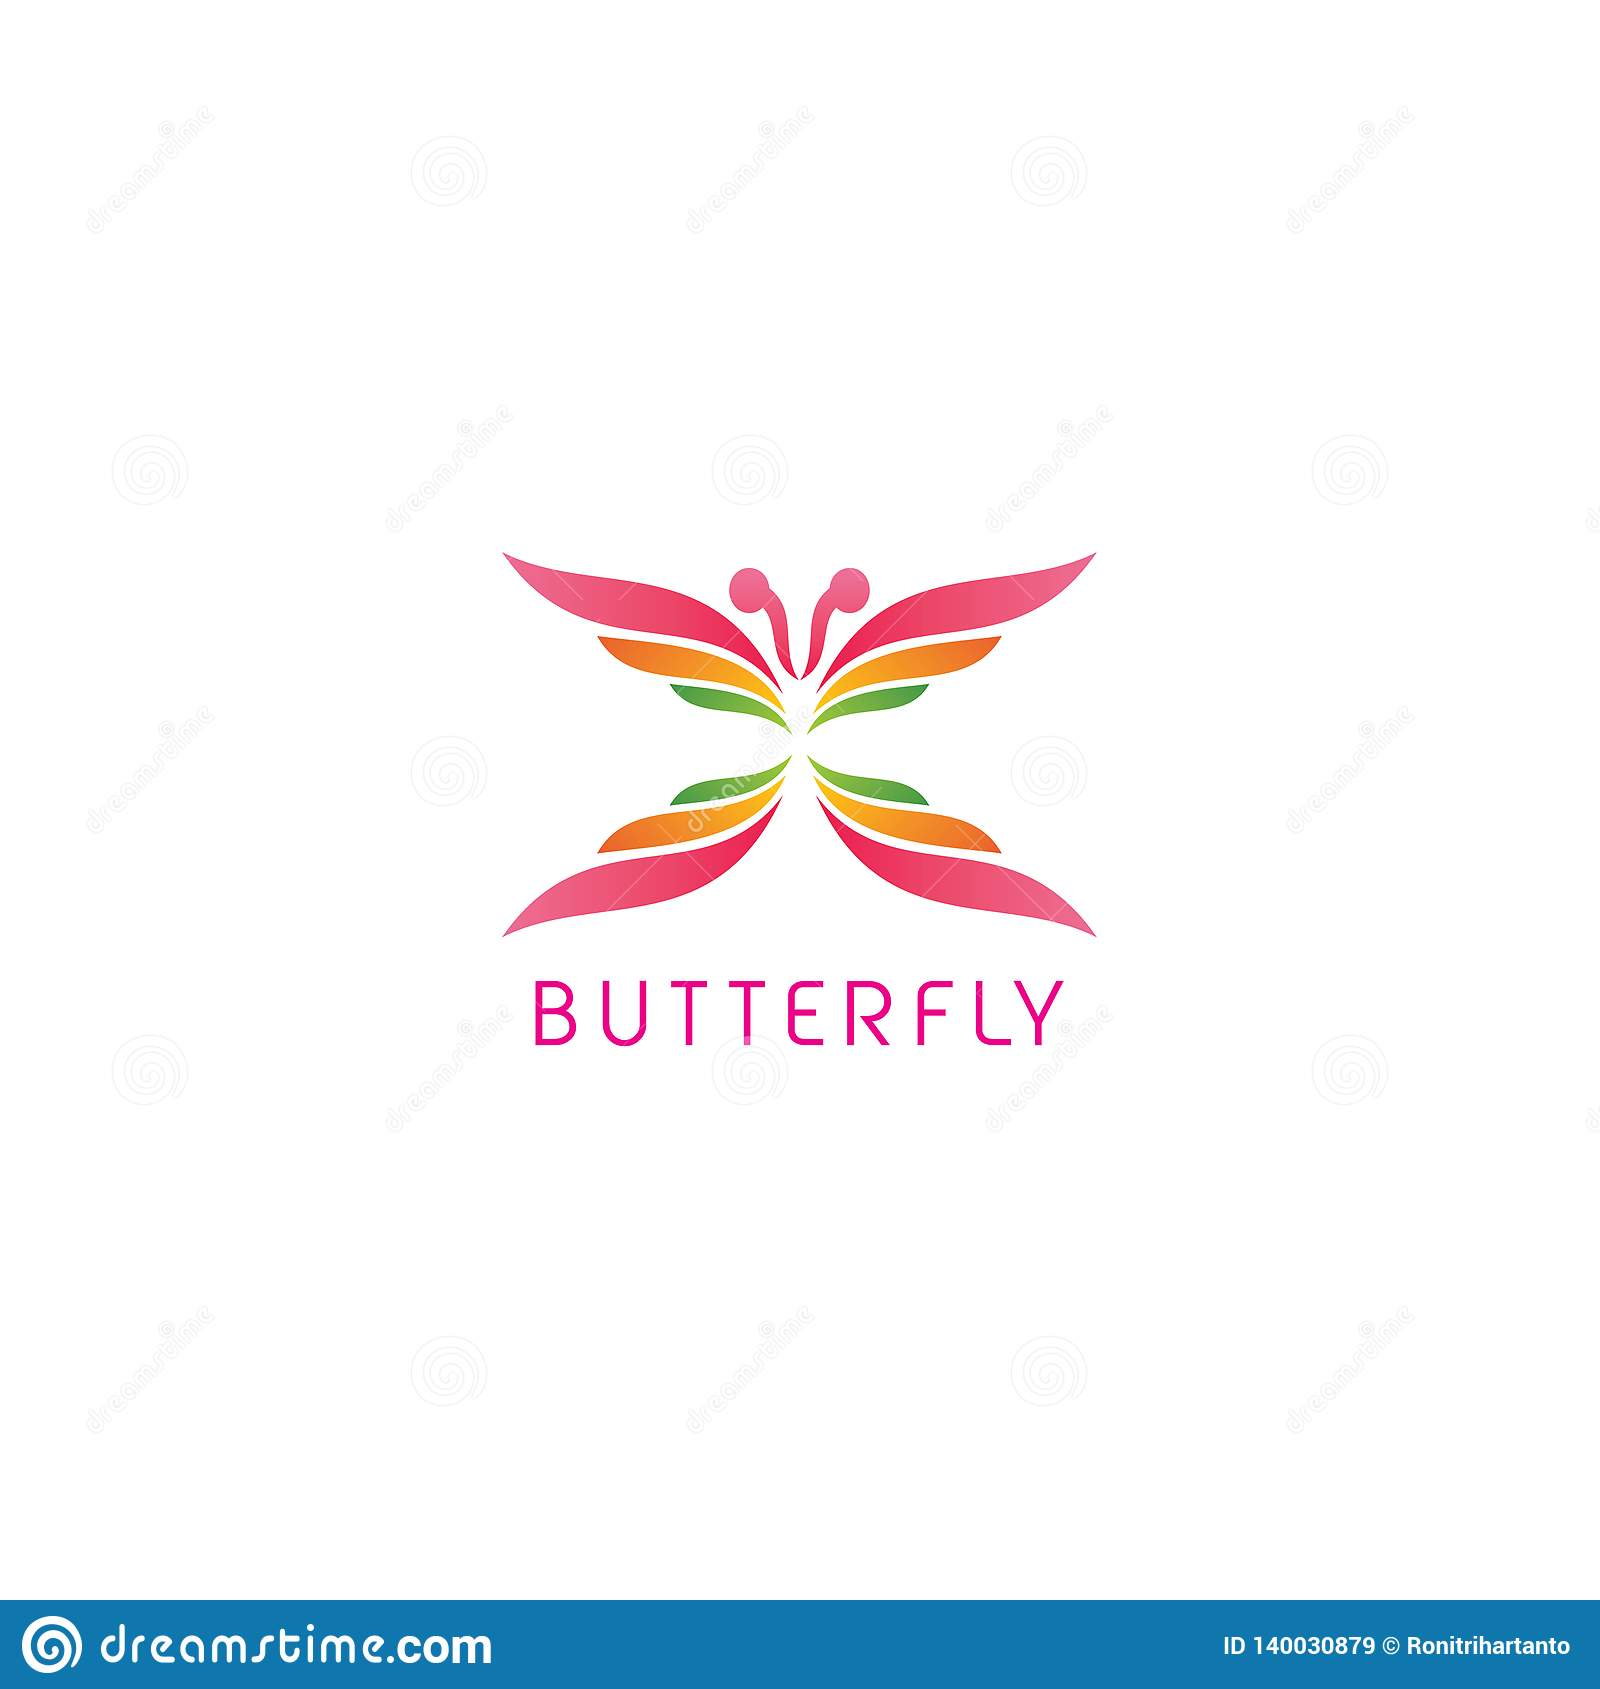 Butterfly icon design vector